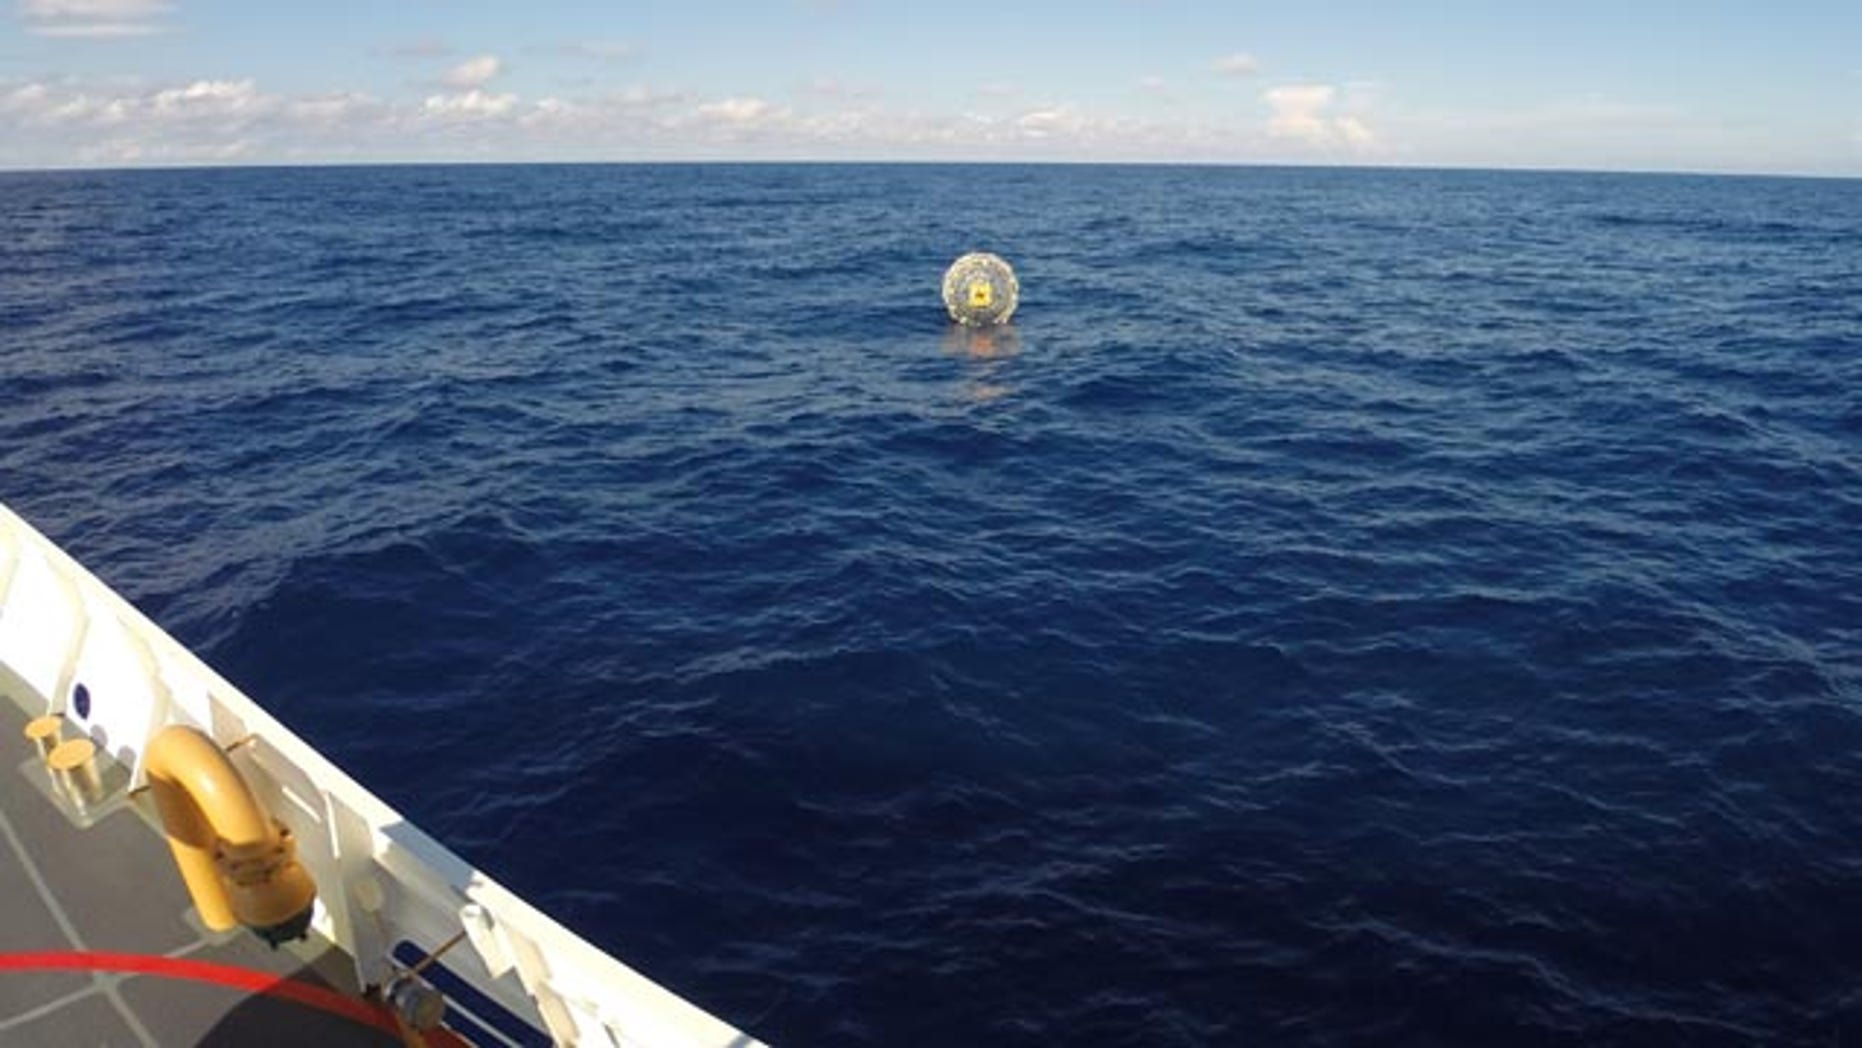 October 4, 2014: In this photo provided by the U.S. Coast Guard, the Coast Guard arrives on scene off the coast of Miami to respond to a report of a man aboard an inflatable hydro bubble who was disoriented. (AP Photo/U.S. Coast Guard)